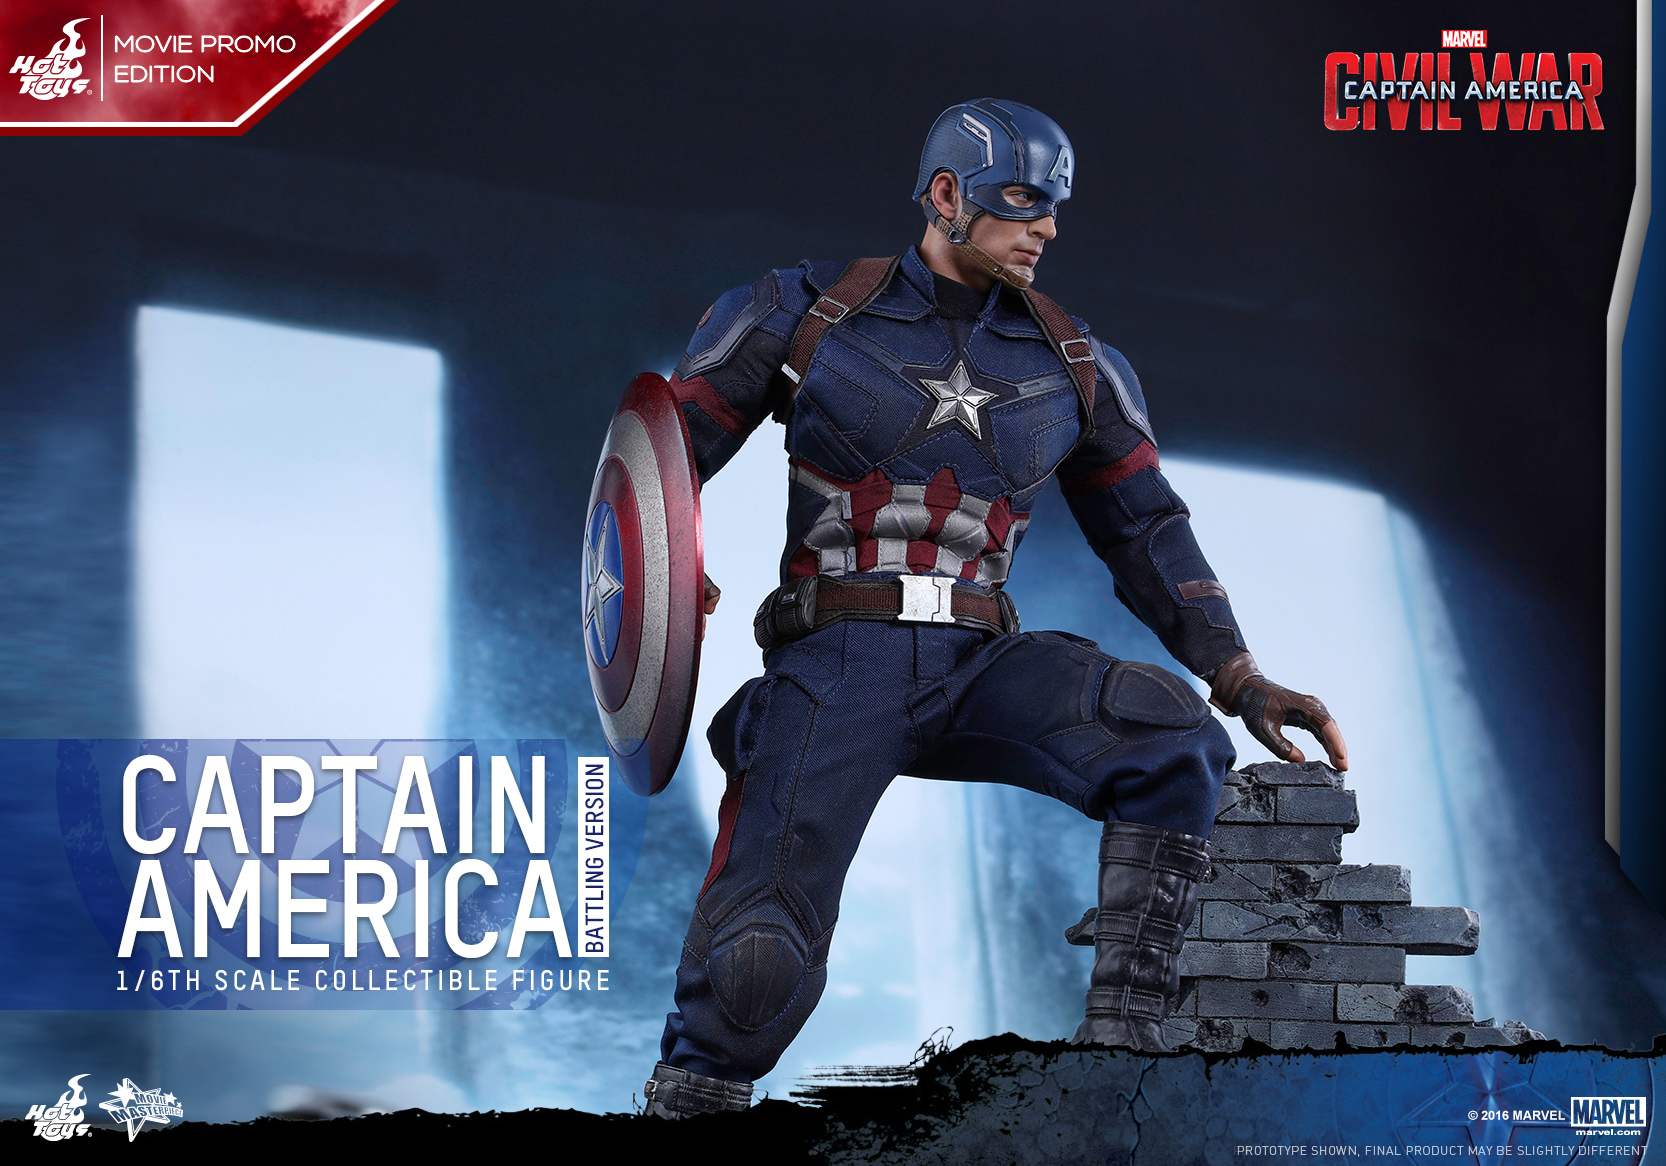 Hot Toys Venganza Media Gazette Iron Man Mark 25 Striker Cacw Captain America Battling Version Pr7